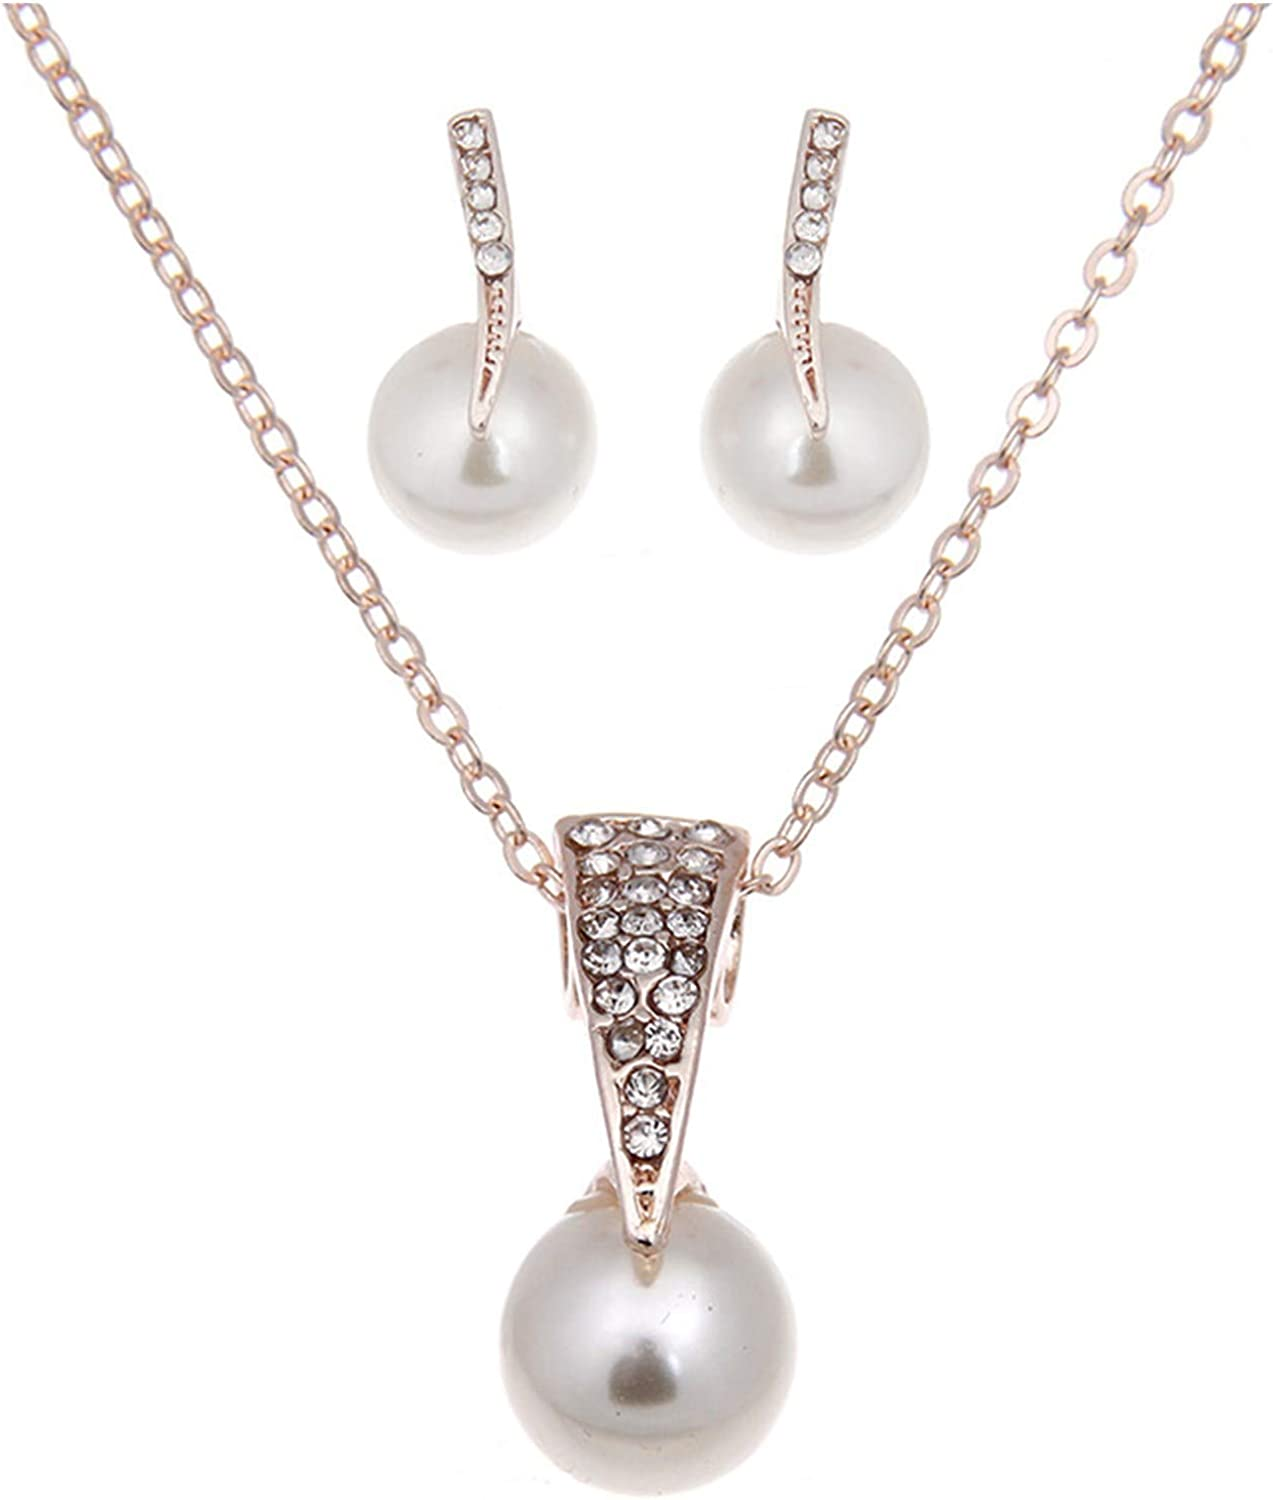 OMGYST Womens Pearl Necklace Earrings Jewelry Set for Bridesmaids & Brides,Birthday/Anniversary Jewelry Gifts for Women Girls